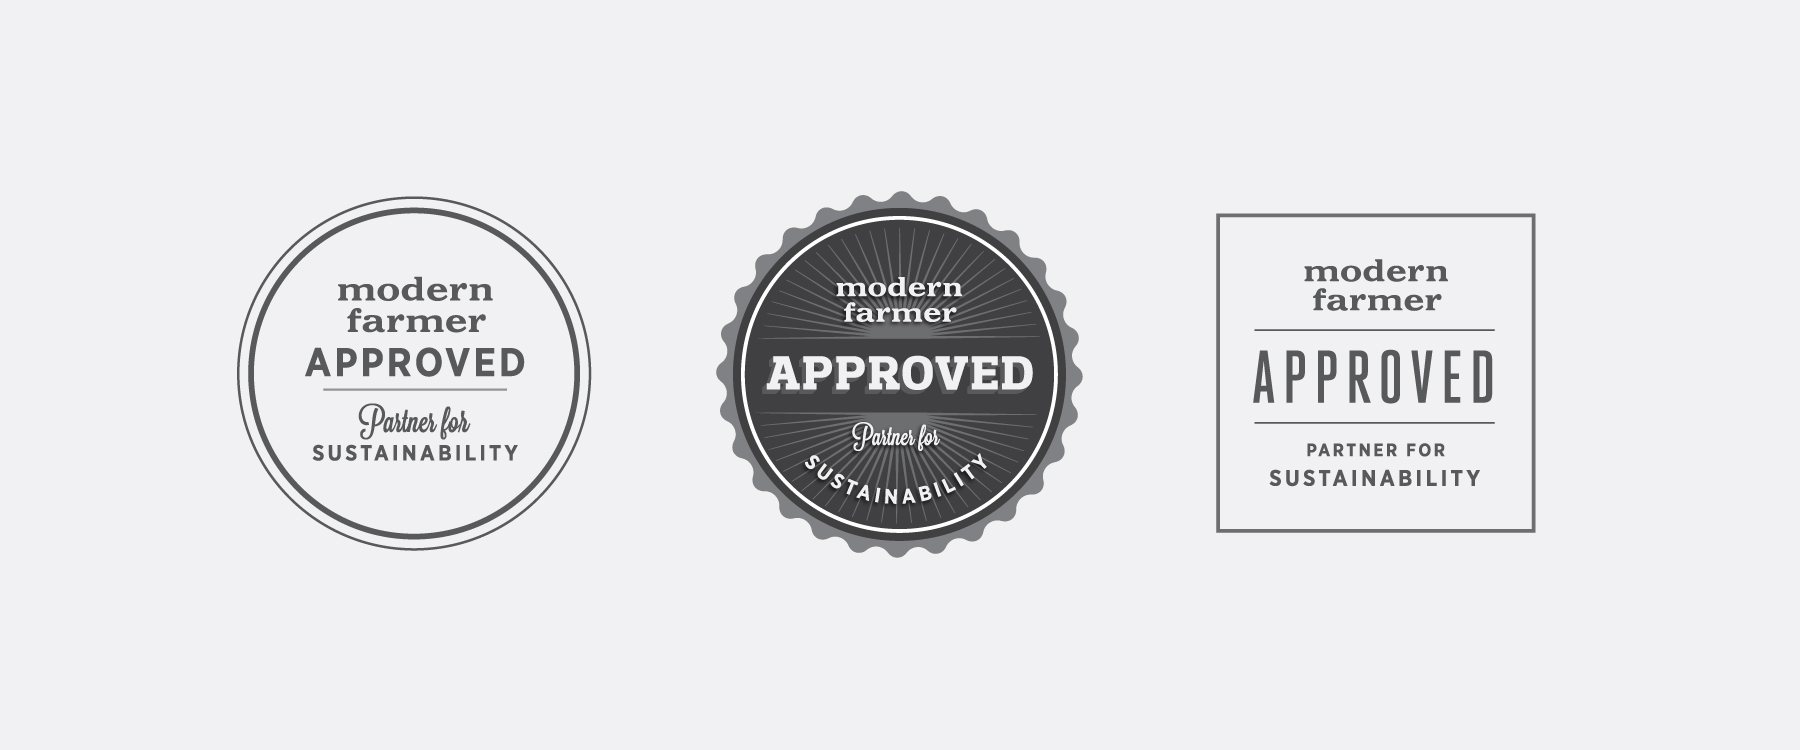 MODERN FARMER APPROVAL SEAL AND LOGO STUDY